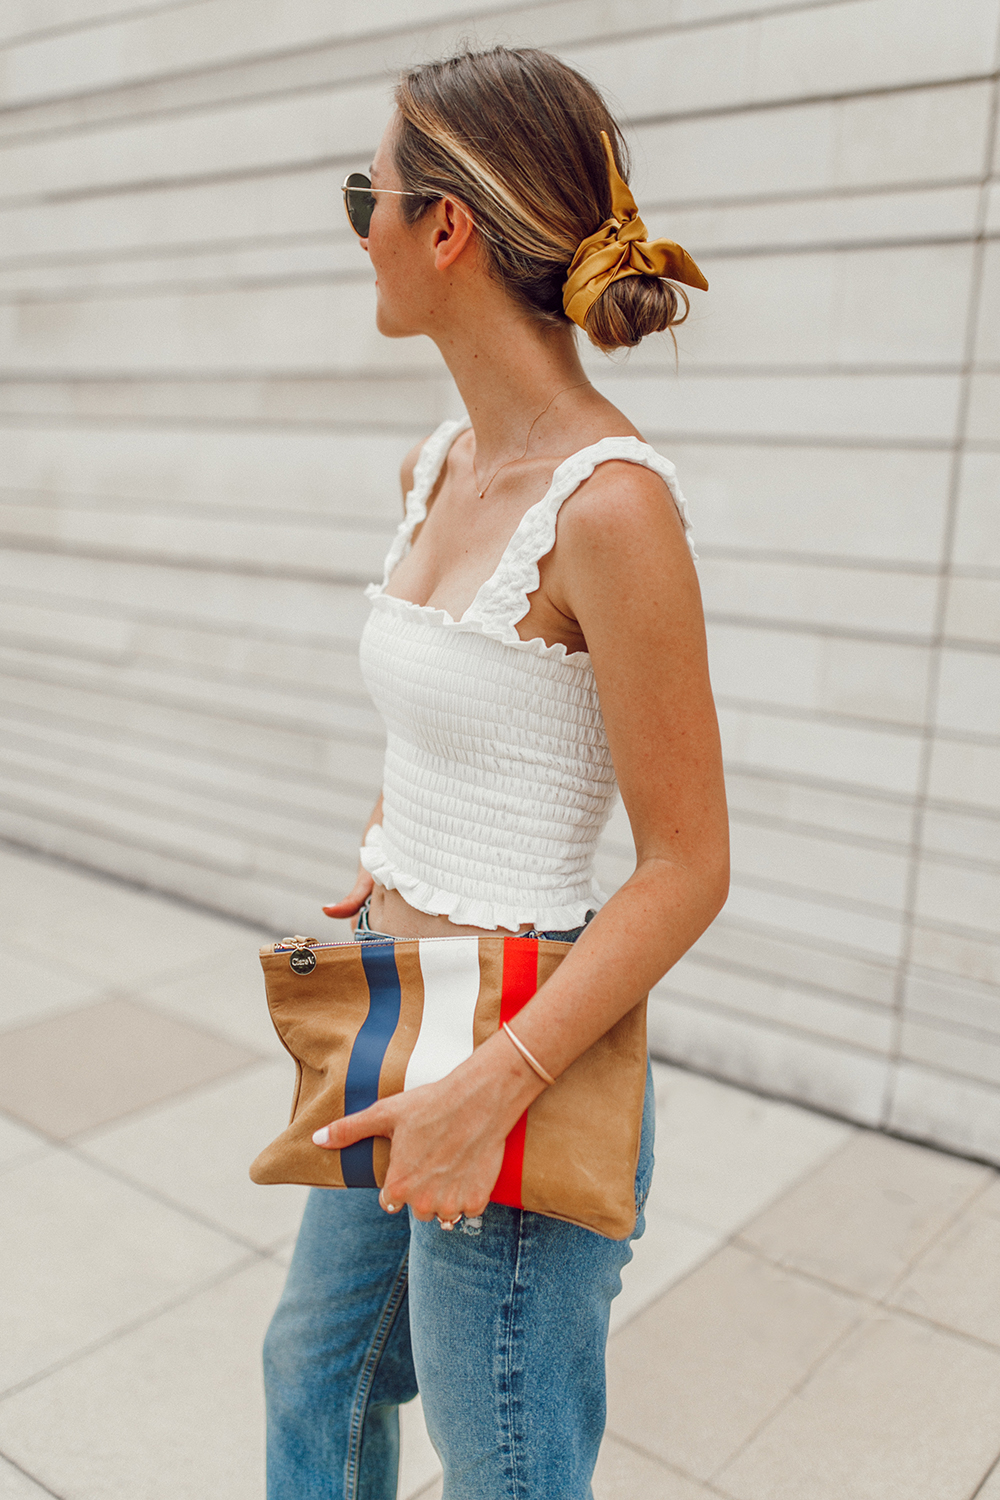 livvyland-blog-olivia-watson-austin-texas-fashion-style-blogger-reformation-tank-top-girlfriend-high-rise-jeans-hair-scarf-summer-outfit-2